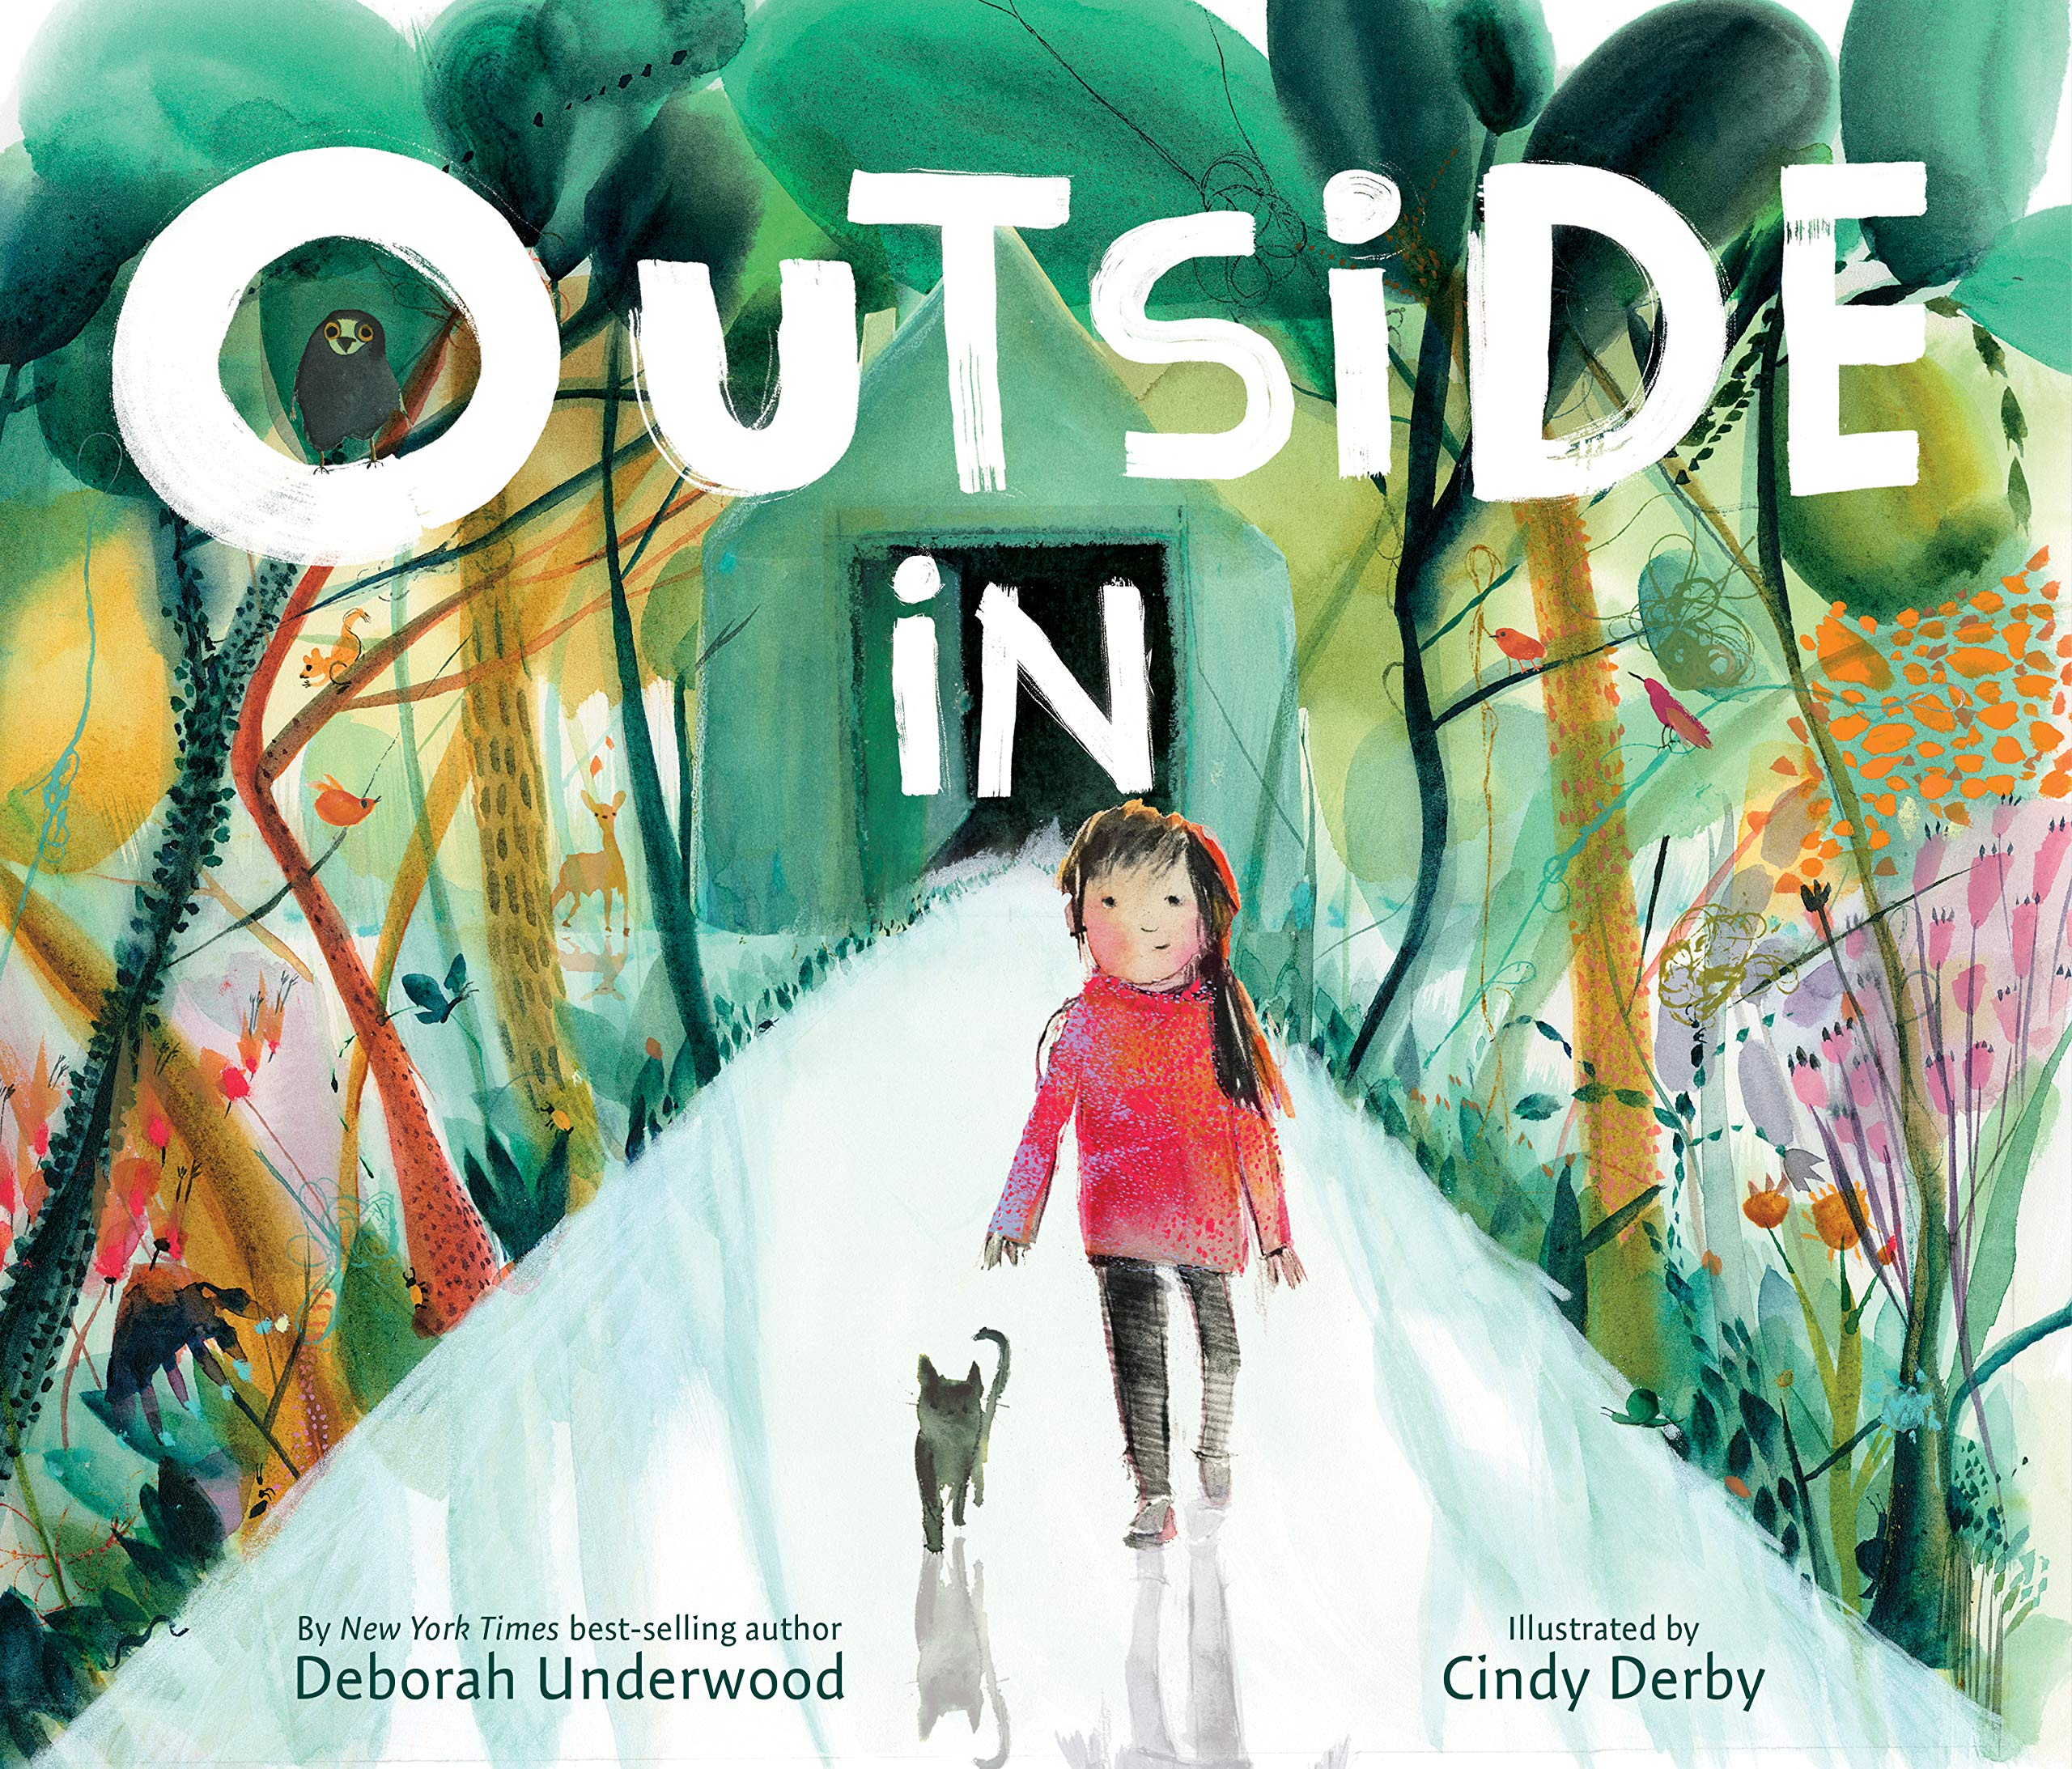 celebrate-picture-books-picture-book-review-outside-in-cover